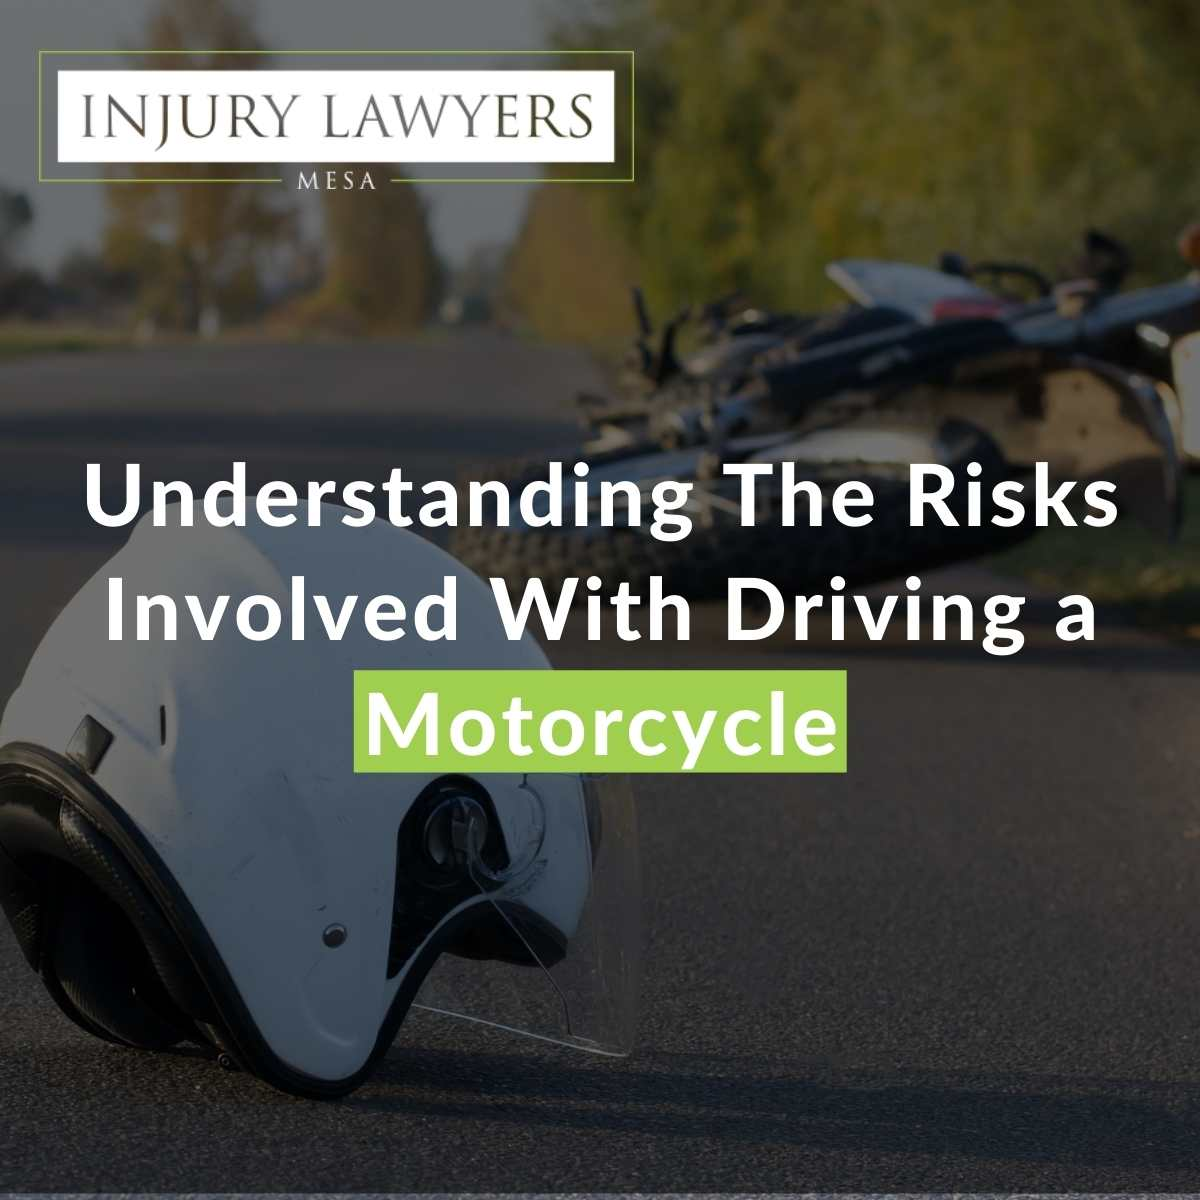 Understanding The Risks Involved With Driving a Motorcycle